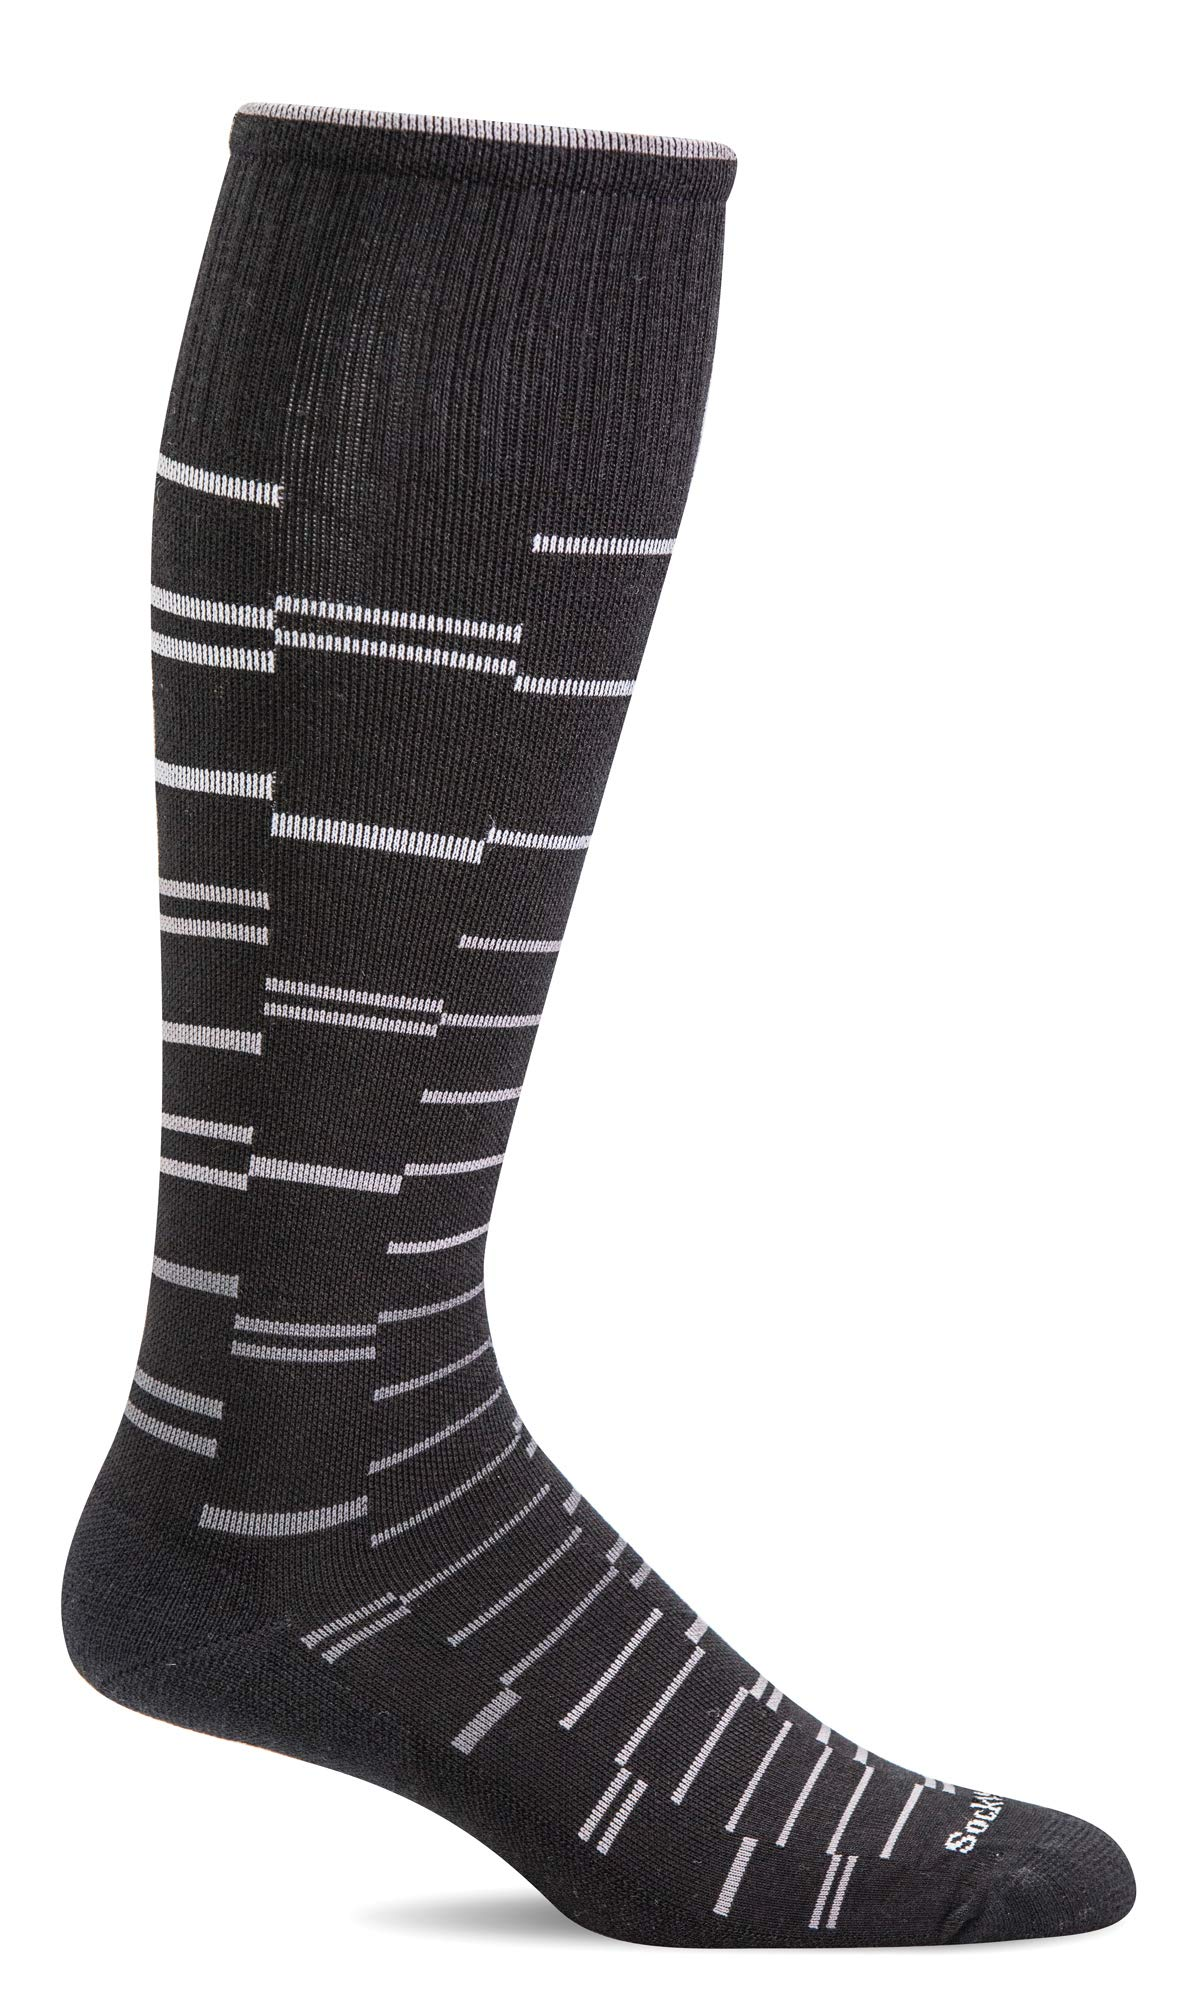 Sockwell Men's Dashing Moderate Graduated Compression Sock, Black - M/L by Sockwell